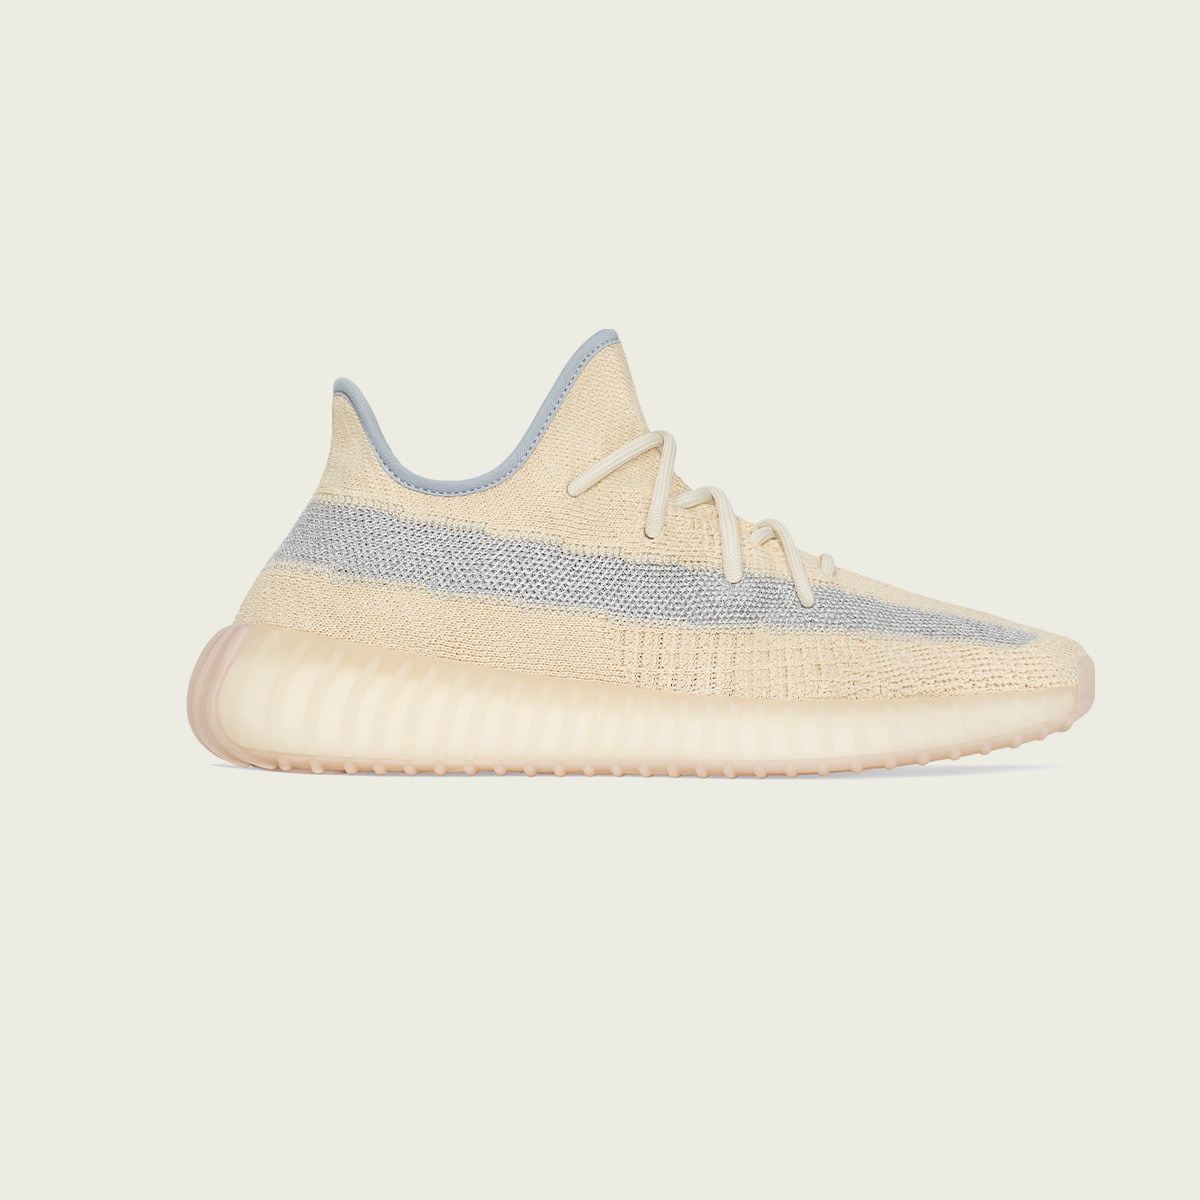 Have you entered the draw for the YEEZY Boost 350 v2 'Linen'?